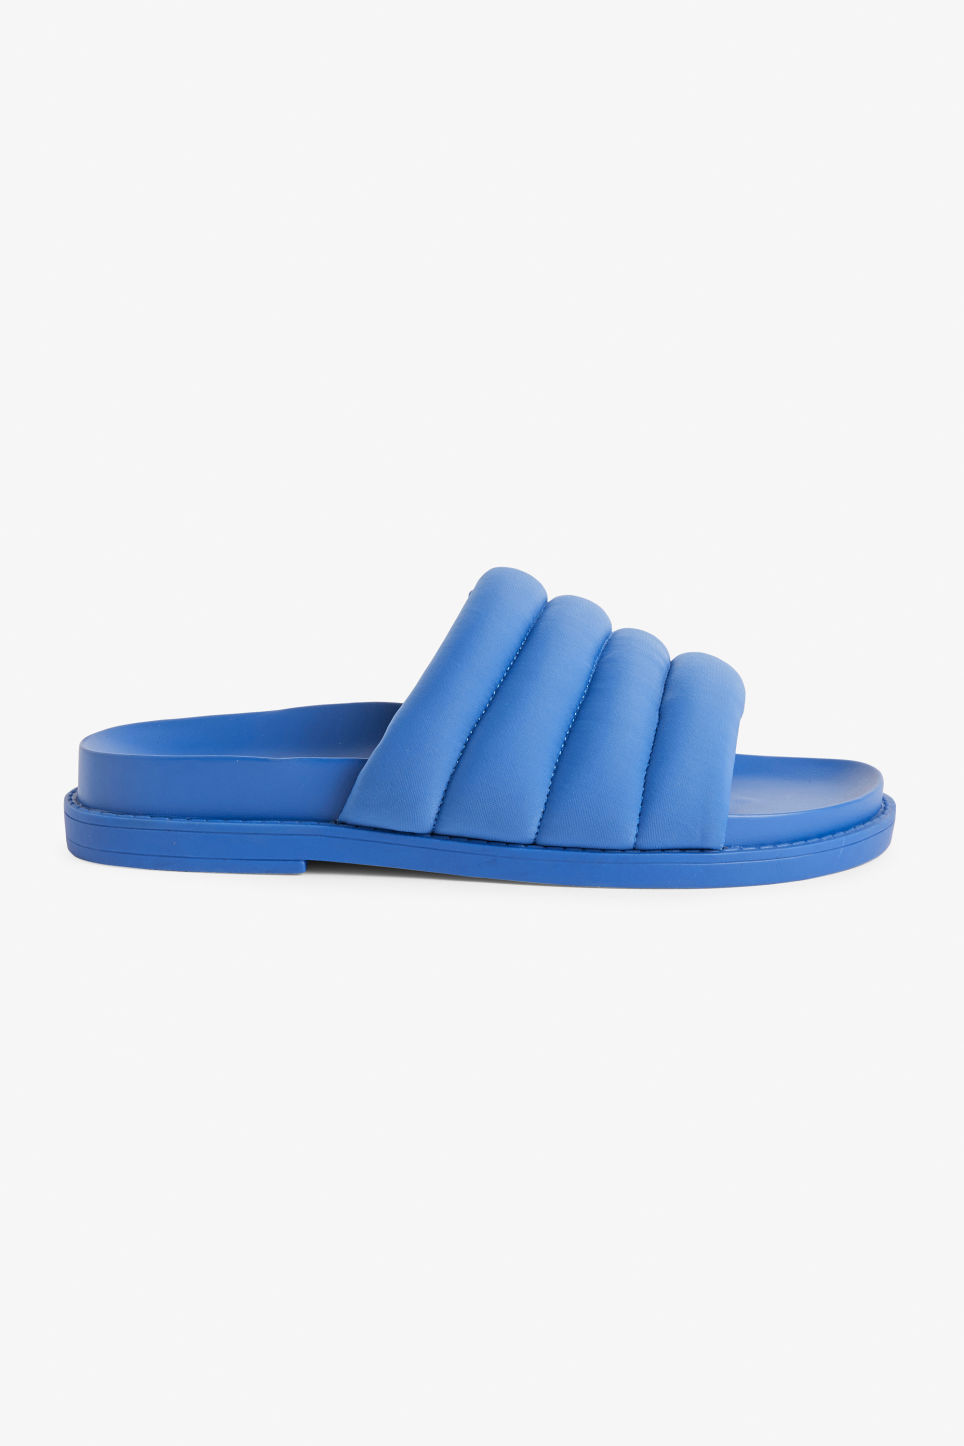 Detailed image of Monki padded beach sandals in blue